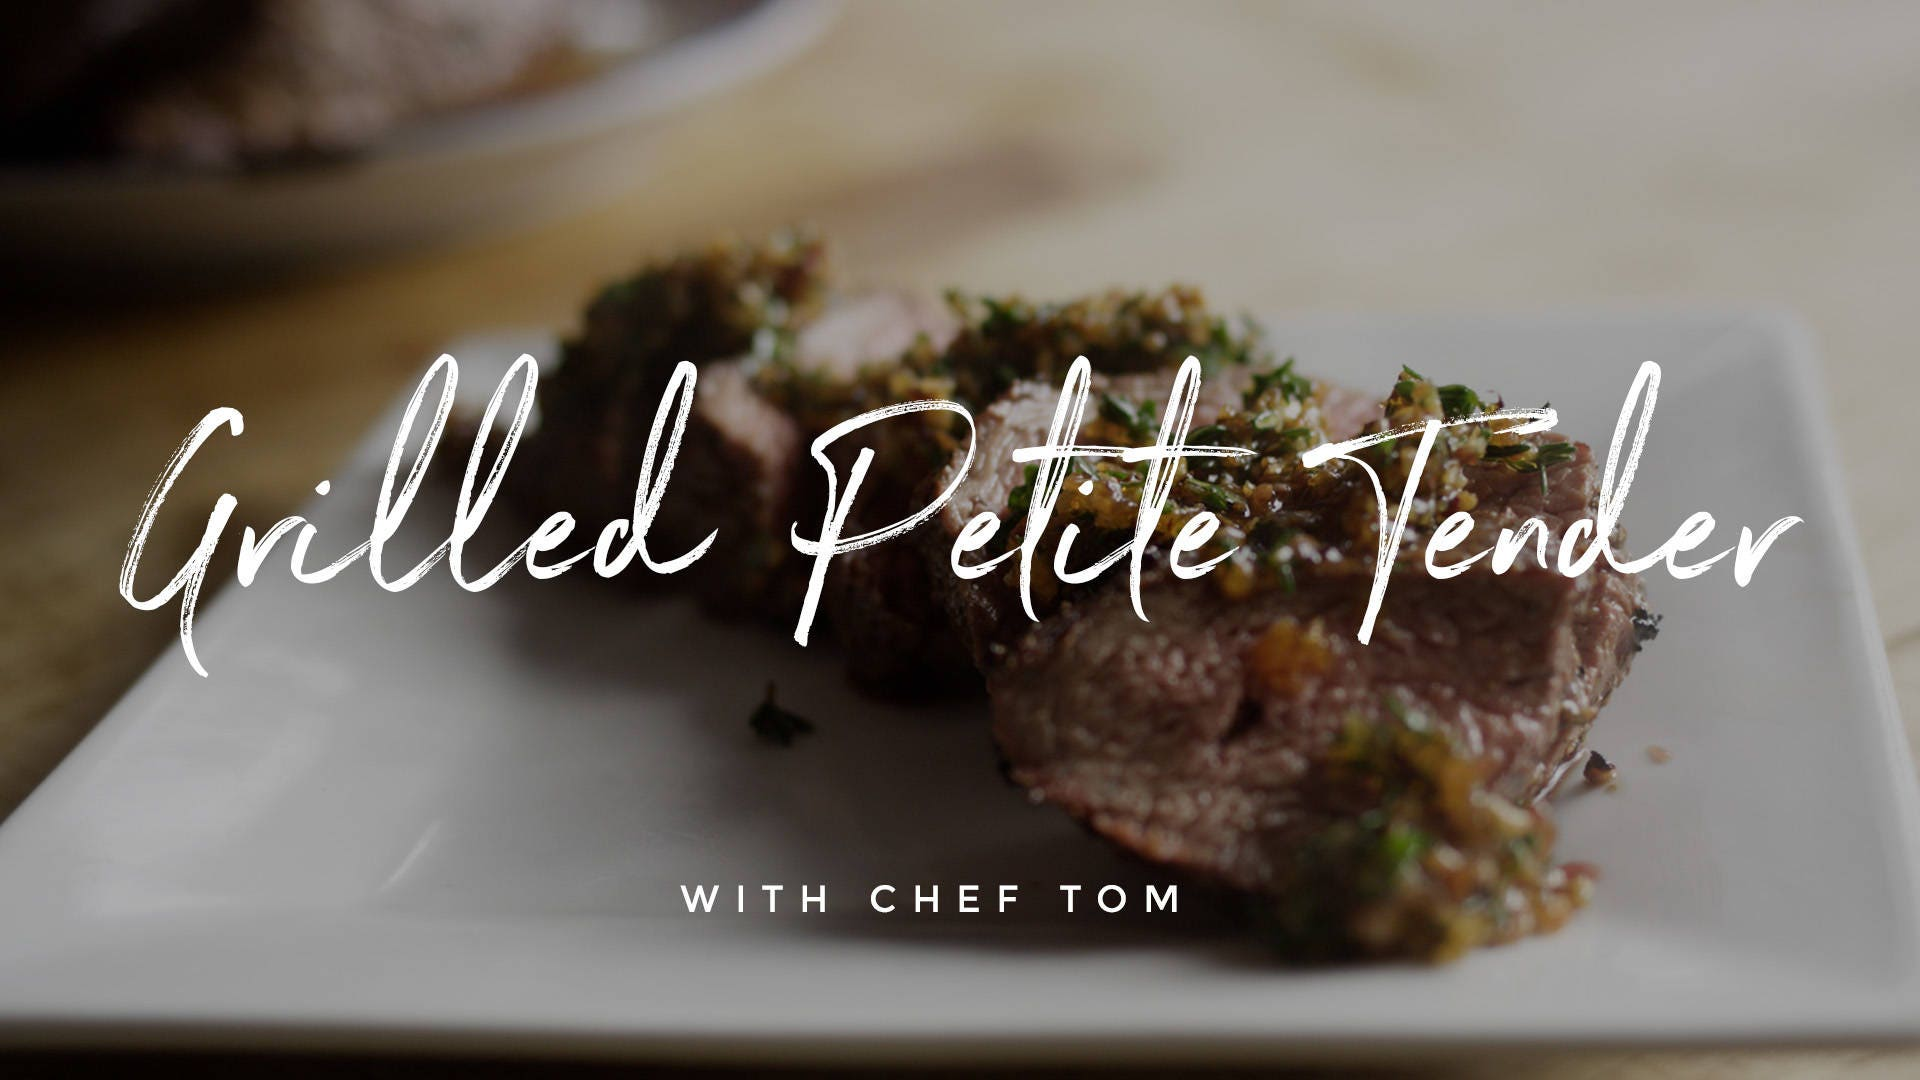 Grilled Petite Tender Recipe